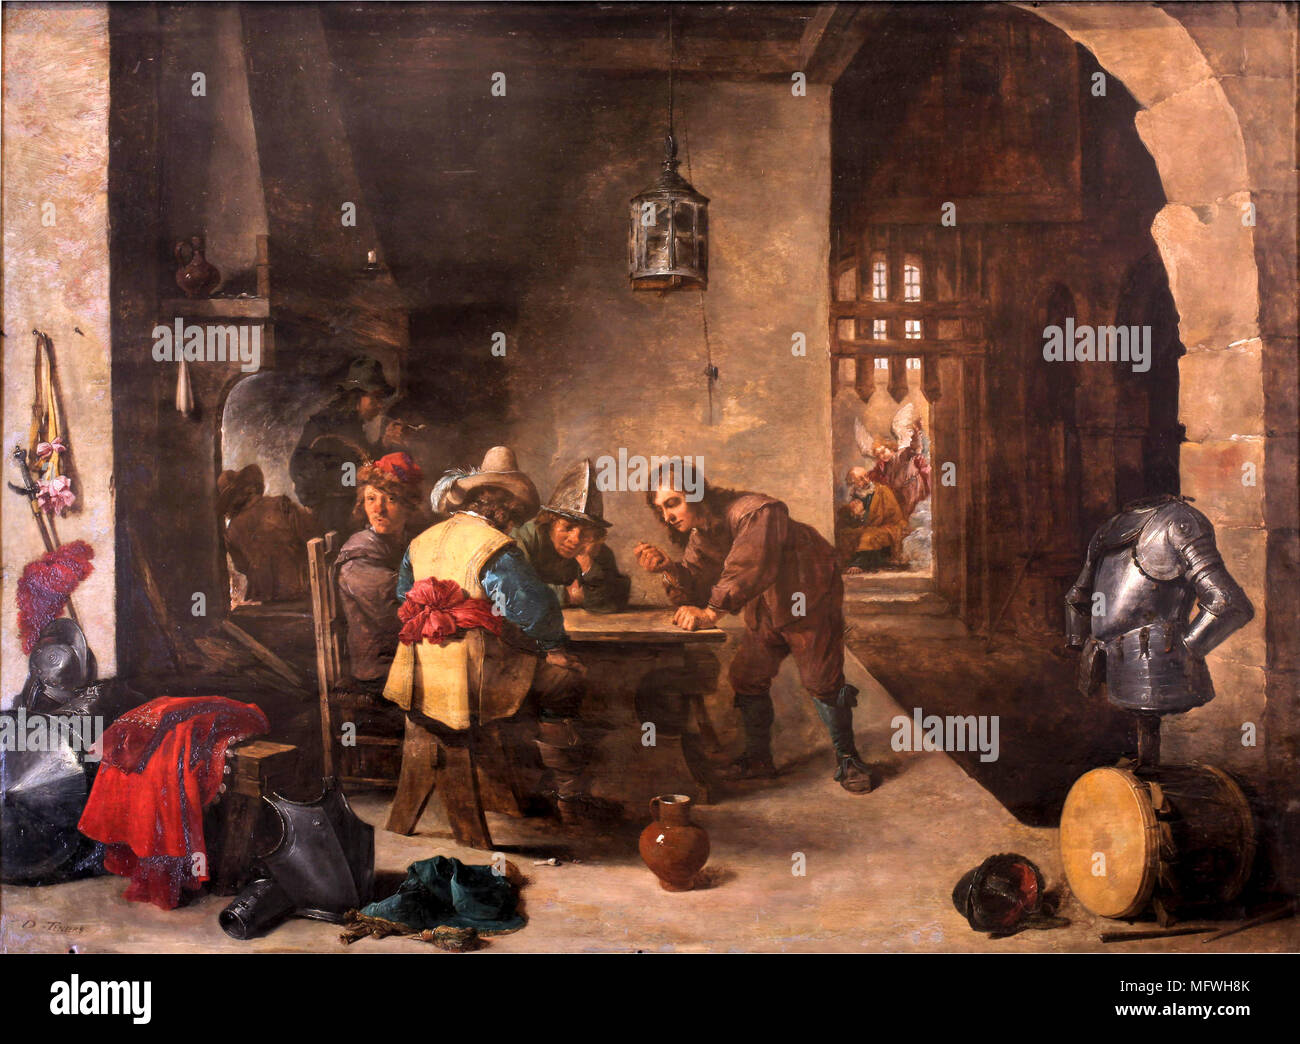 'Guardroom with Saint Peter delivered' by David Teniers the Younger - Stock Image